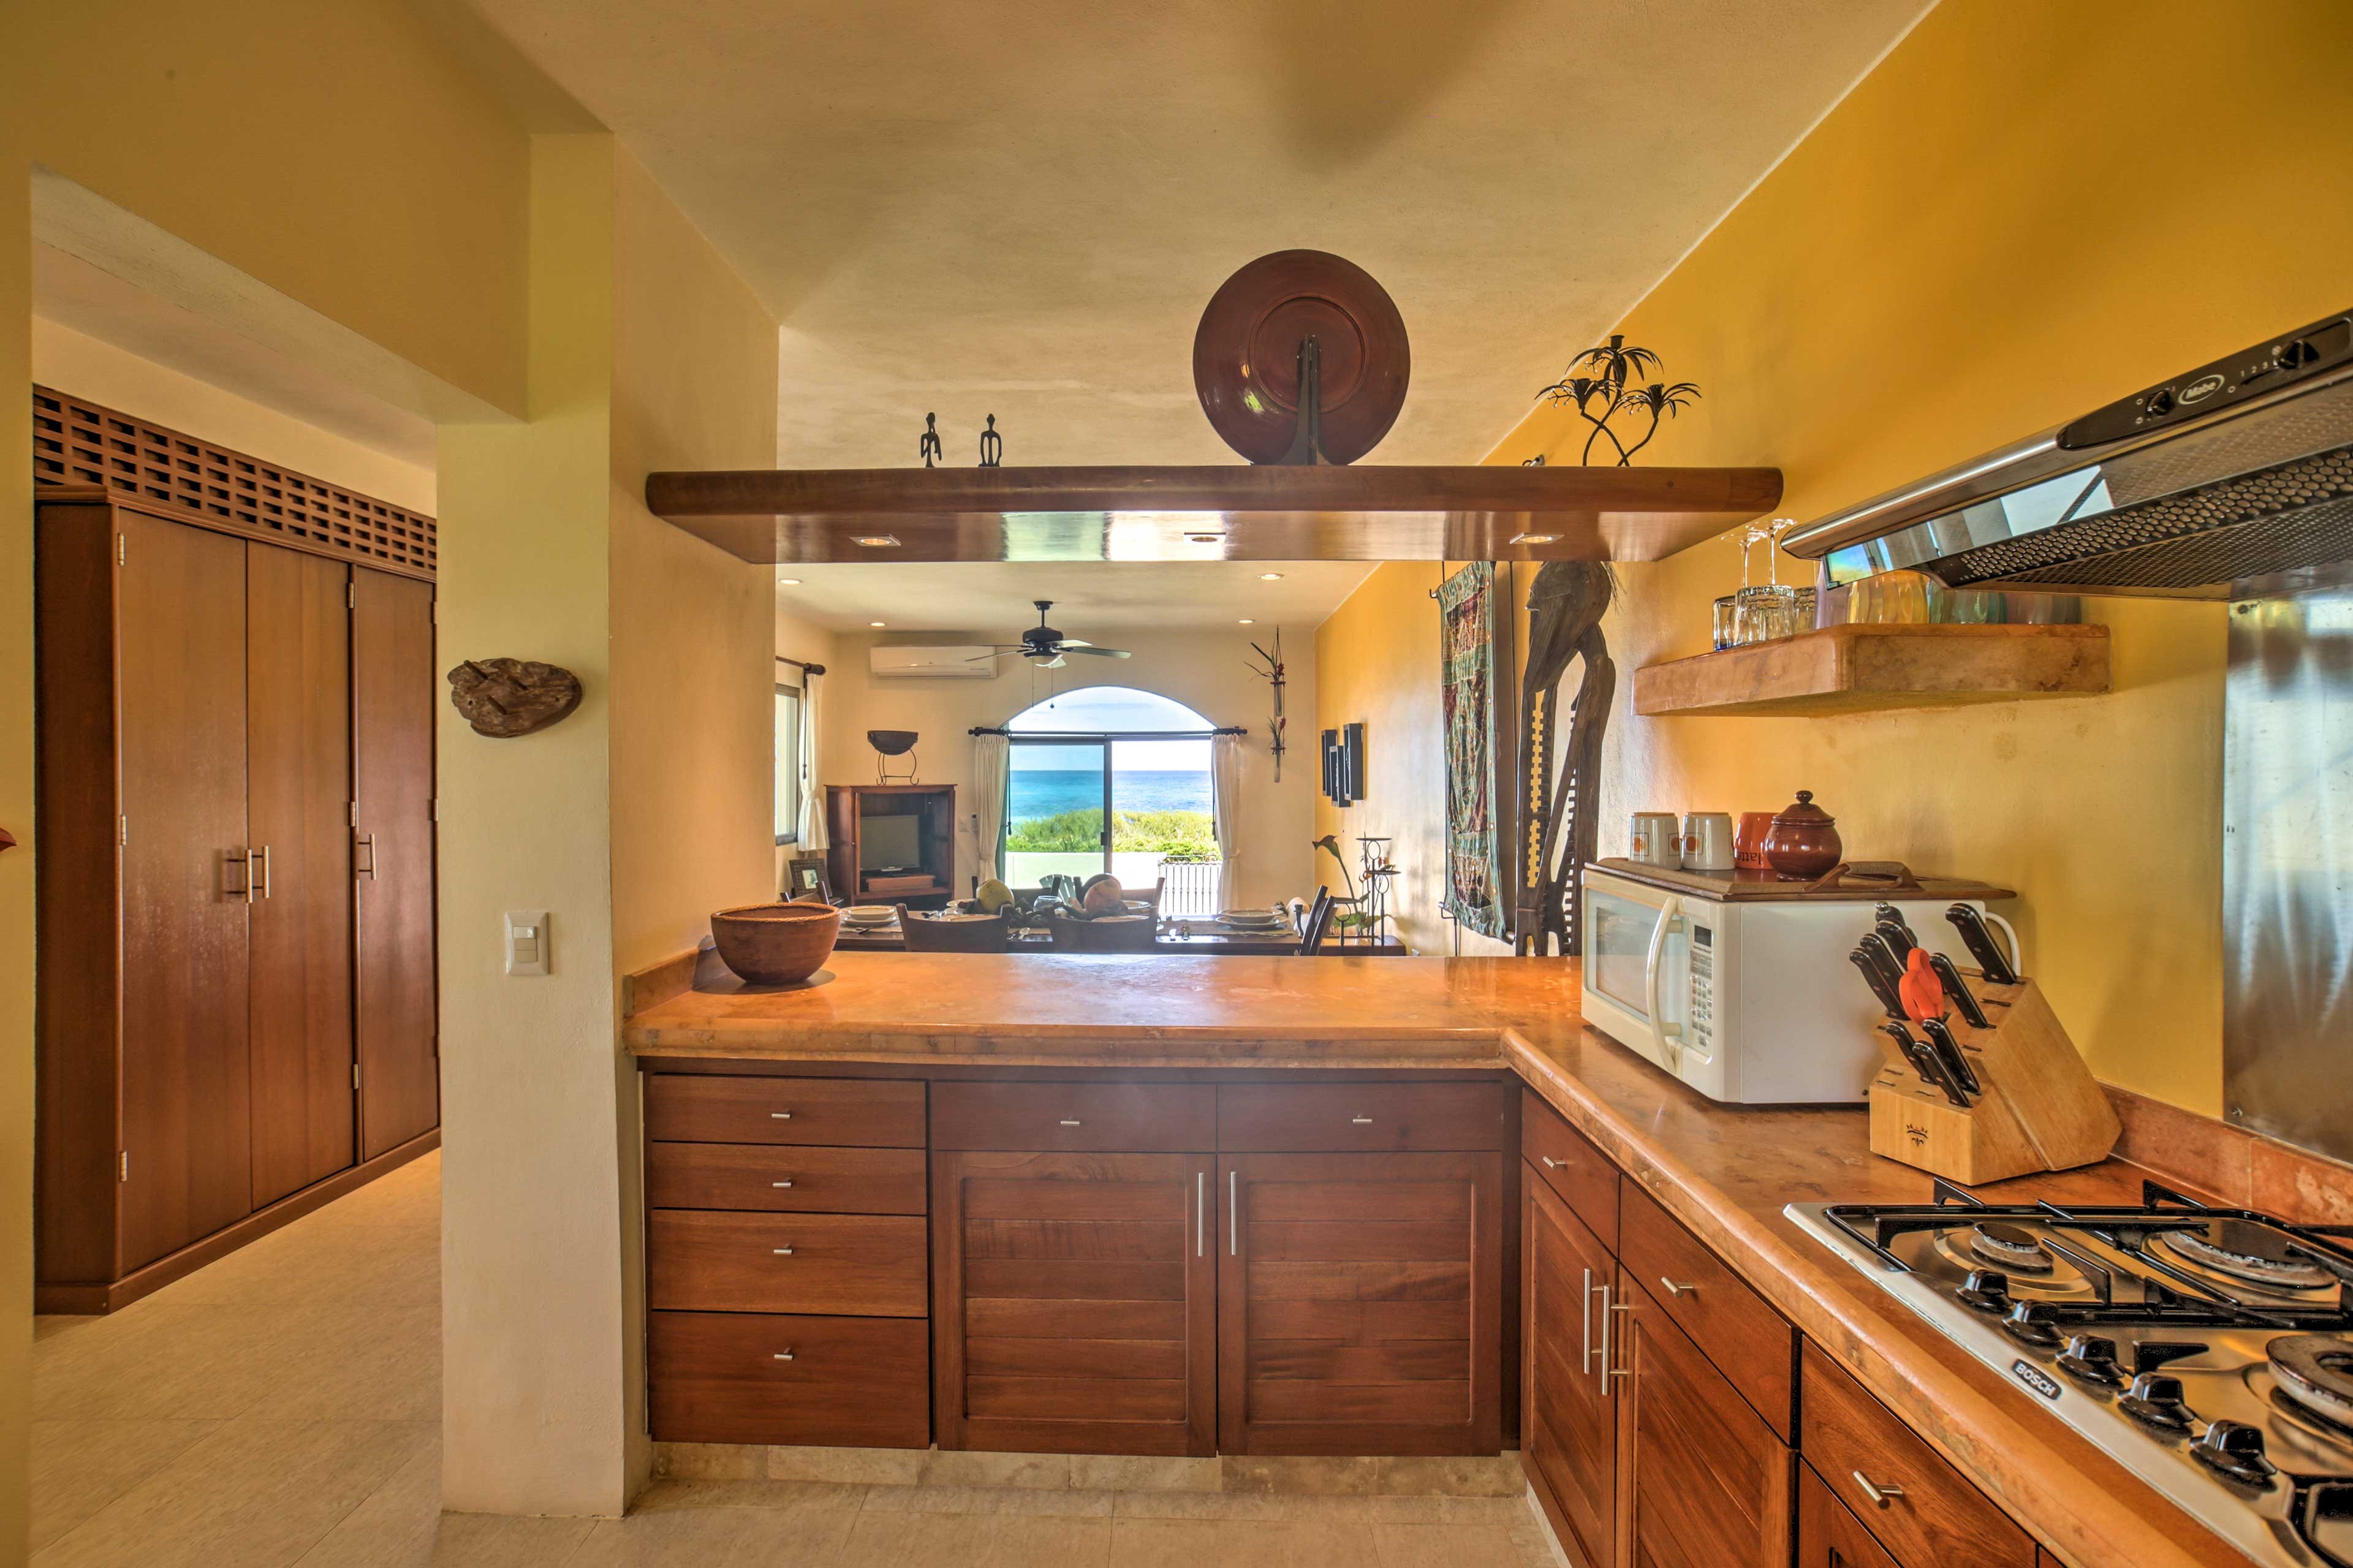 Make a family-favorite recipe in this fully equipped kitchen.